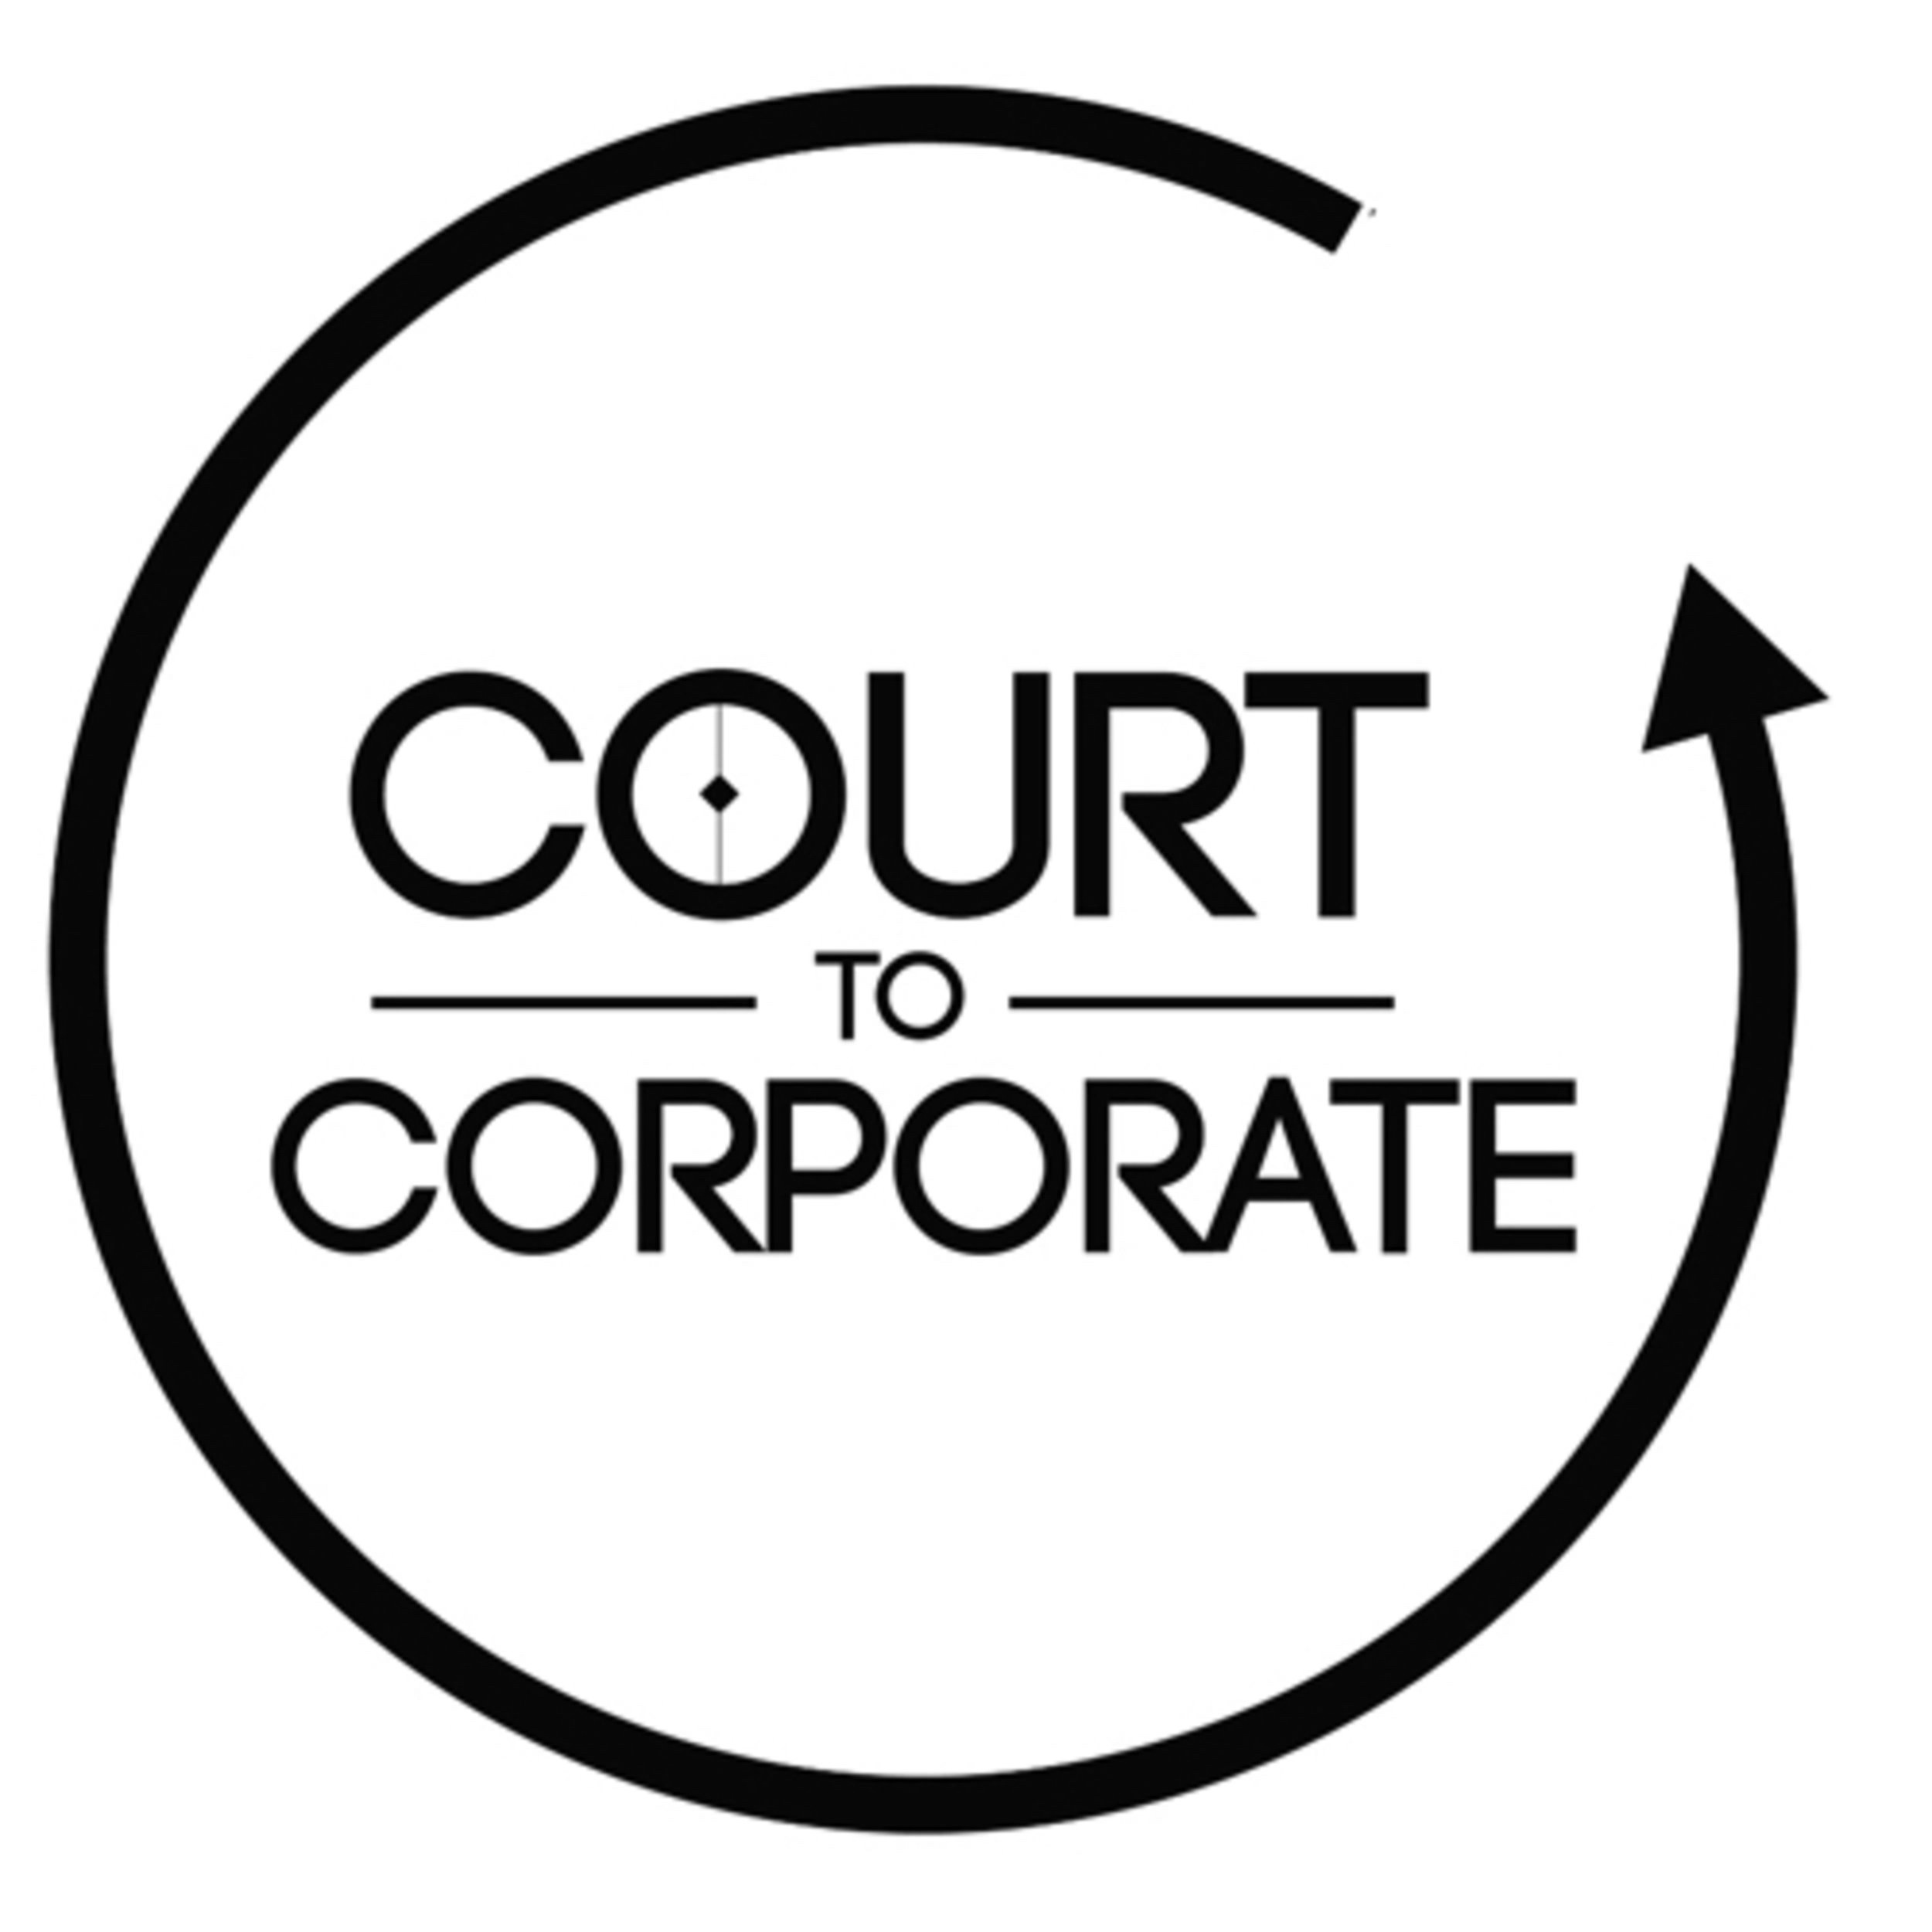 Court To Corporate